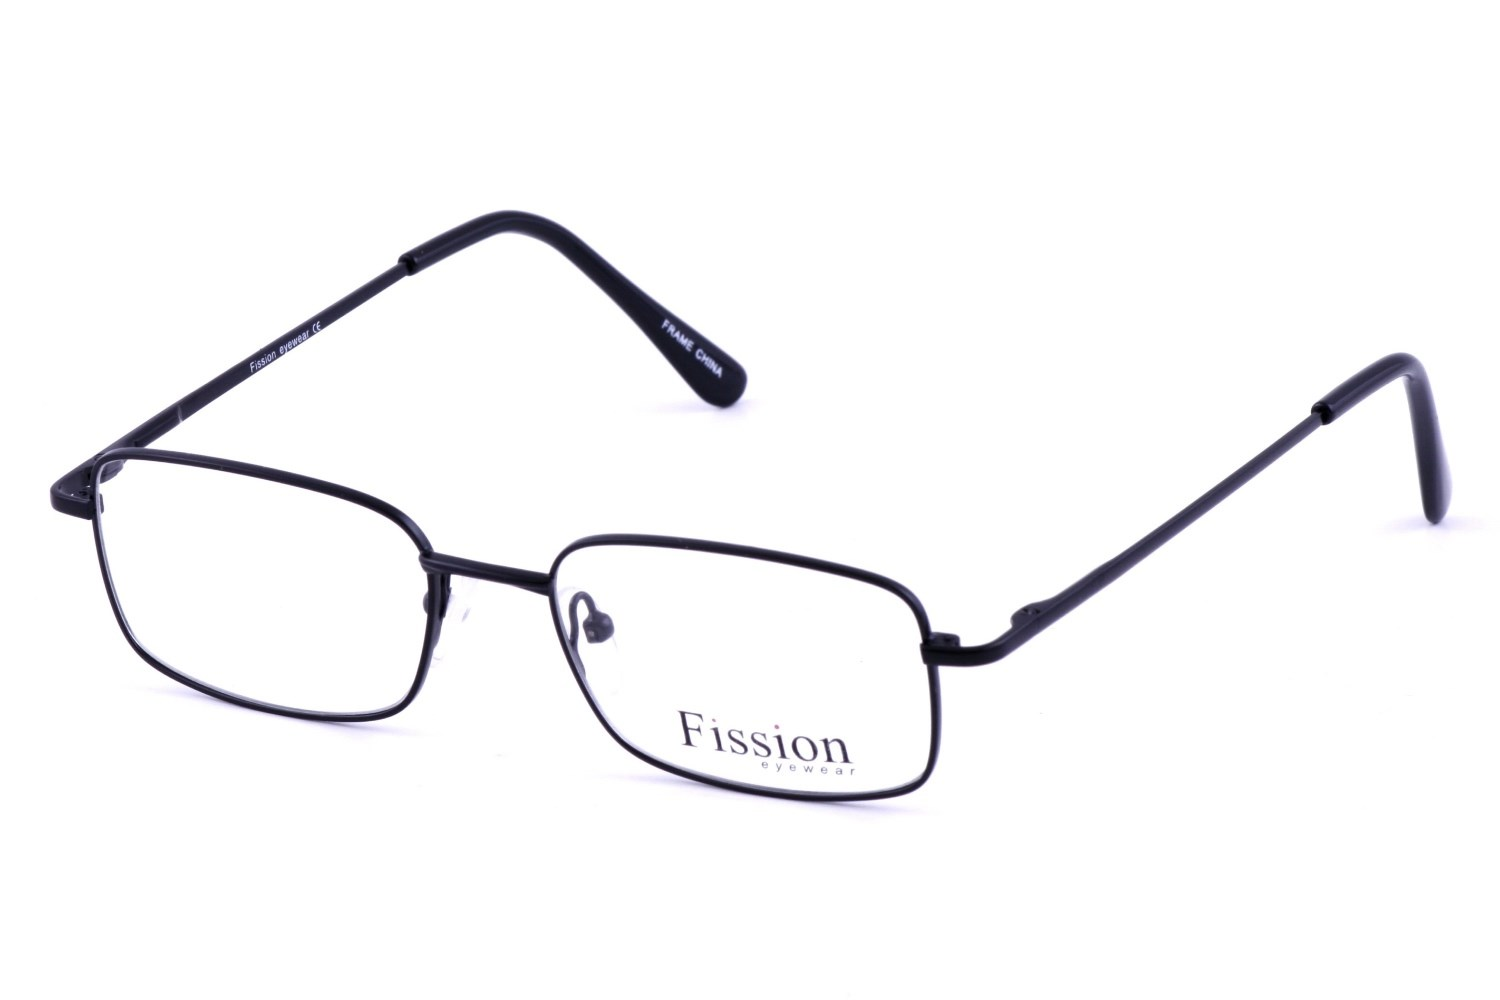 Fission 015 Prescription Eyeglasses Frames